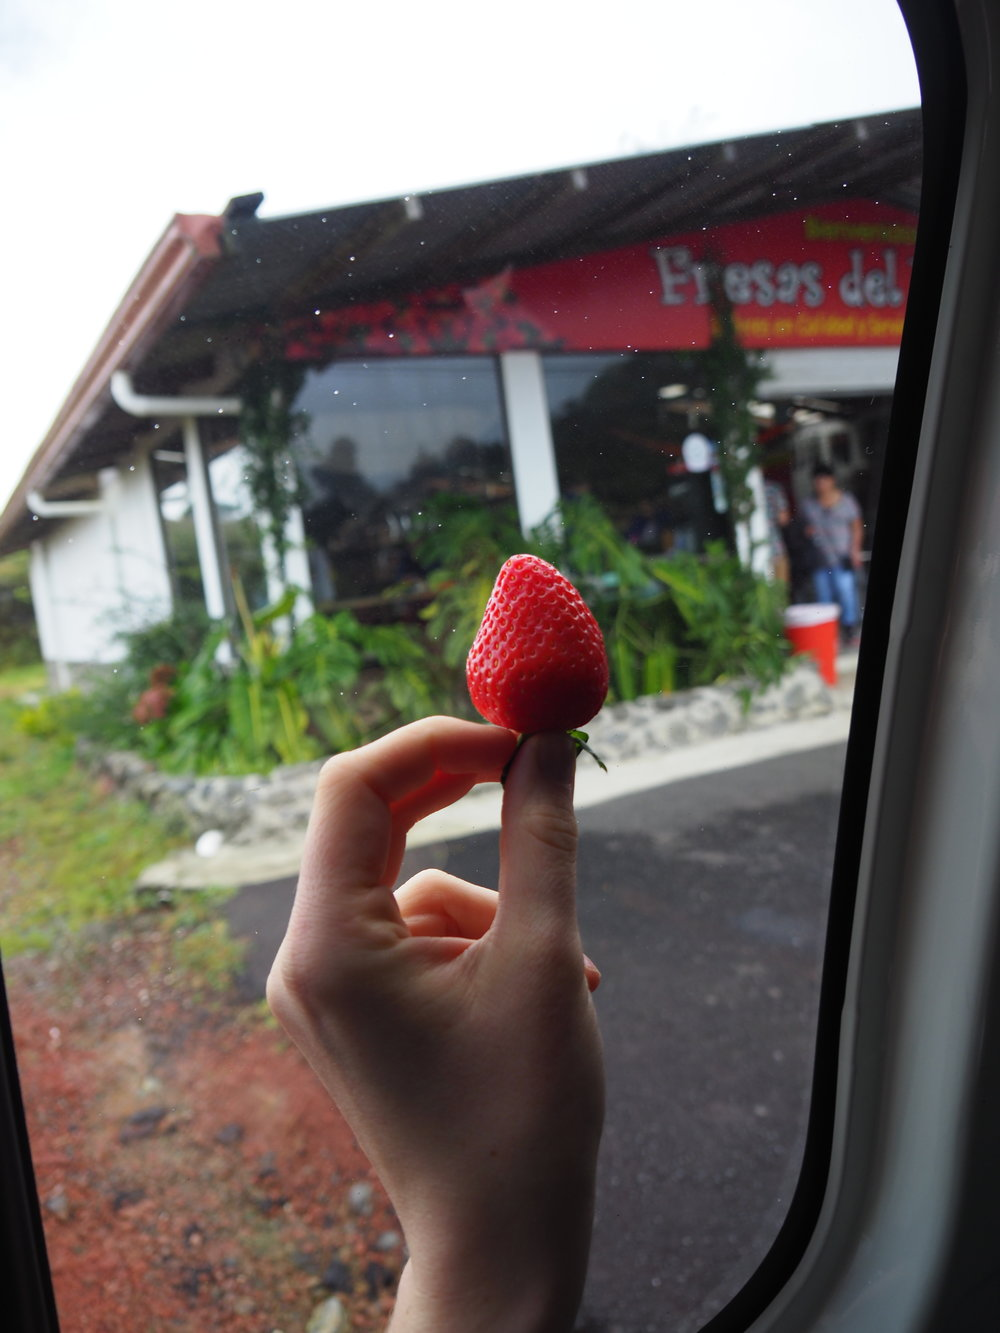 A strawberry from a shop called Fresas de Volcan